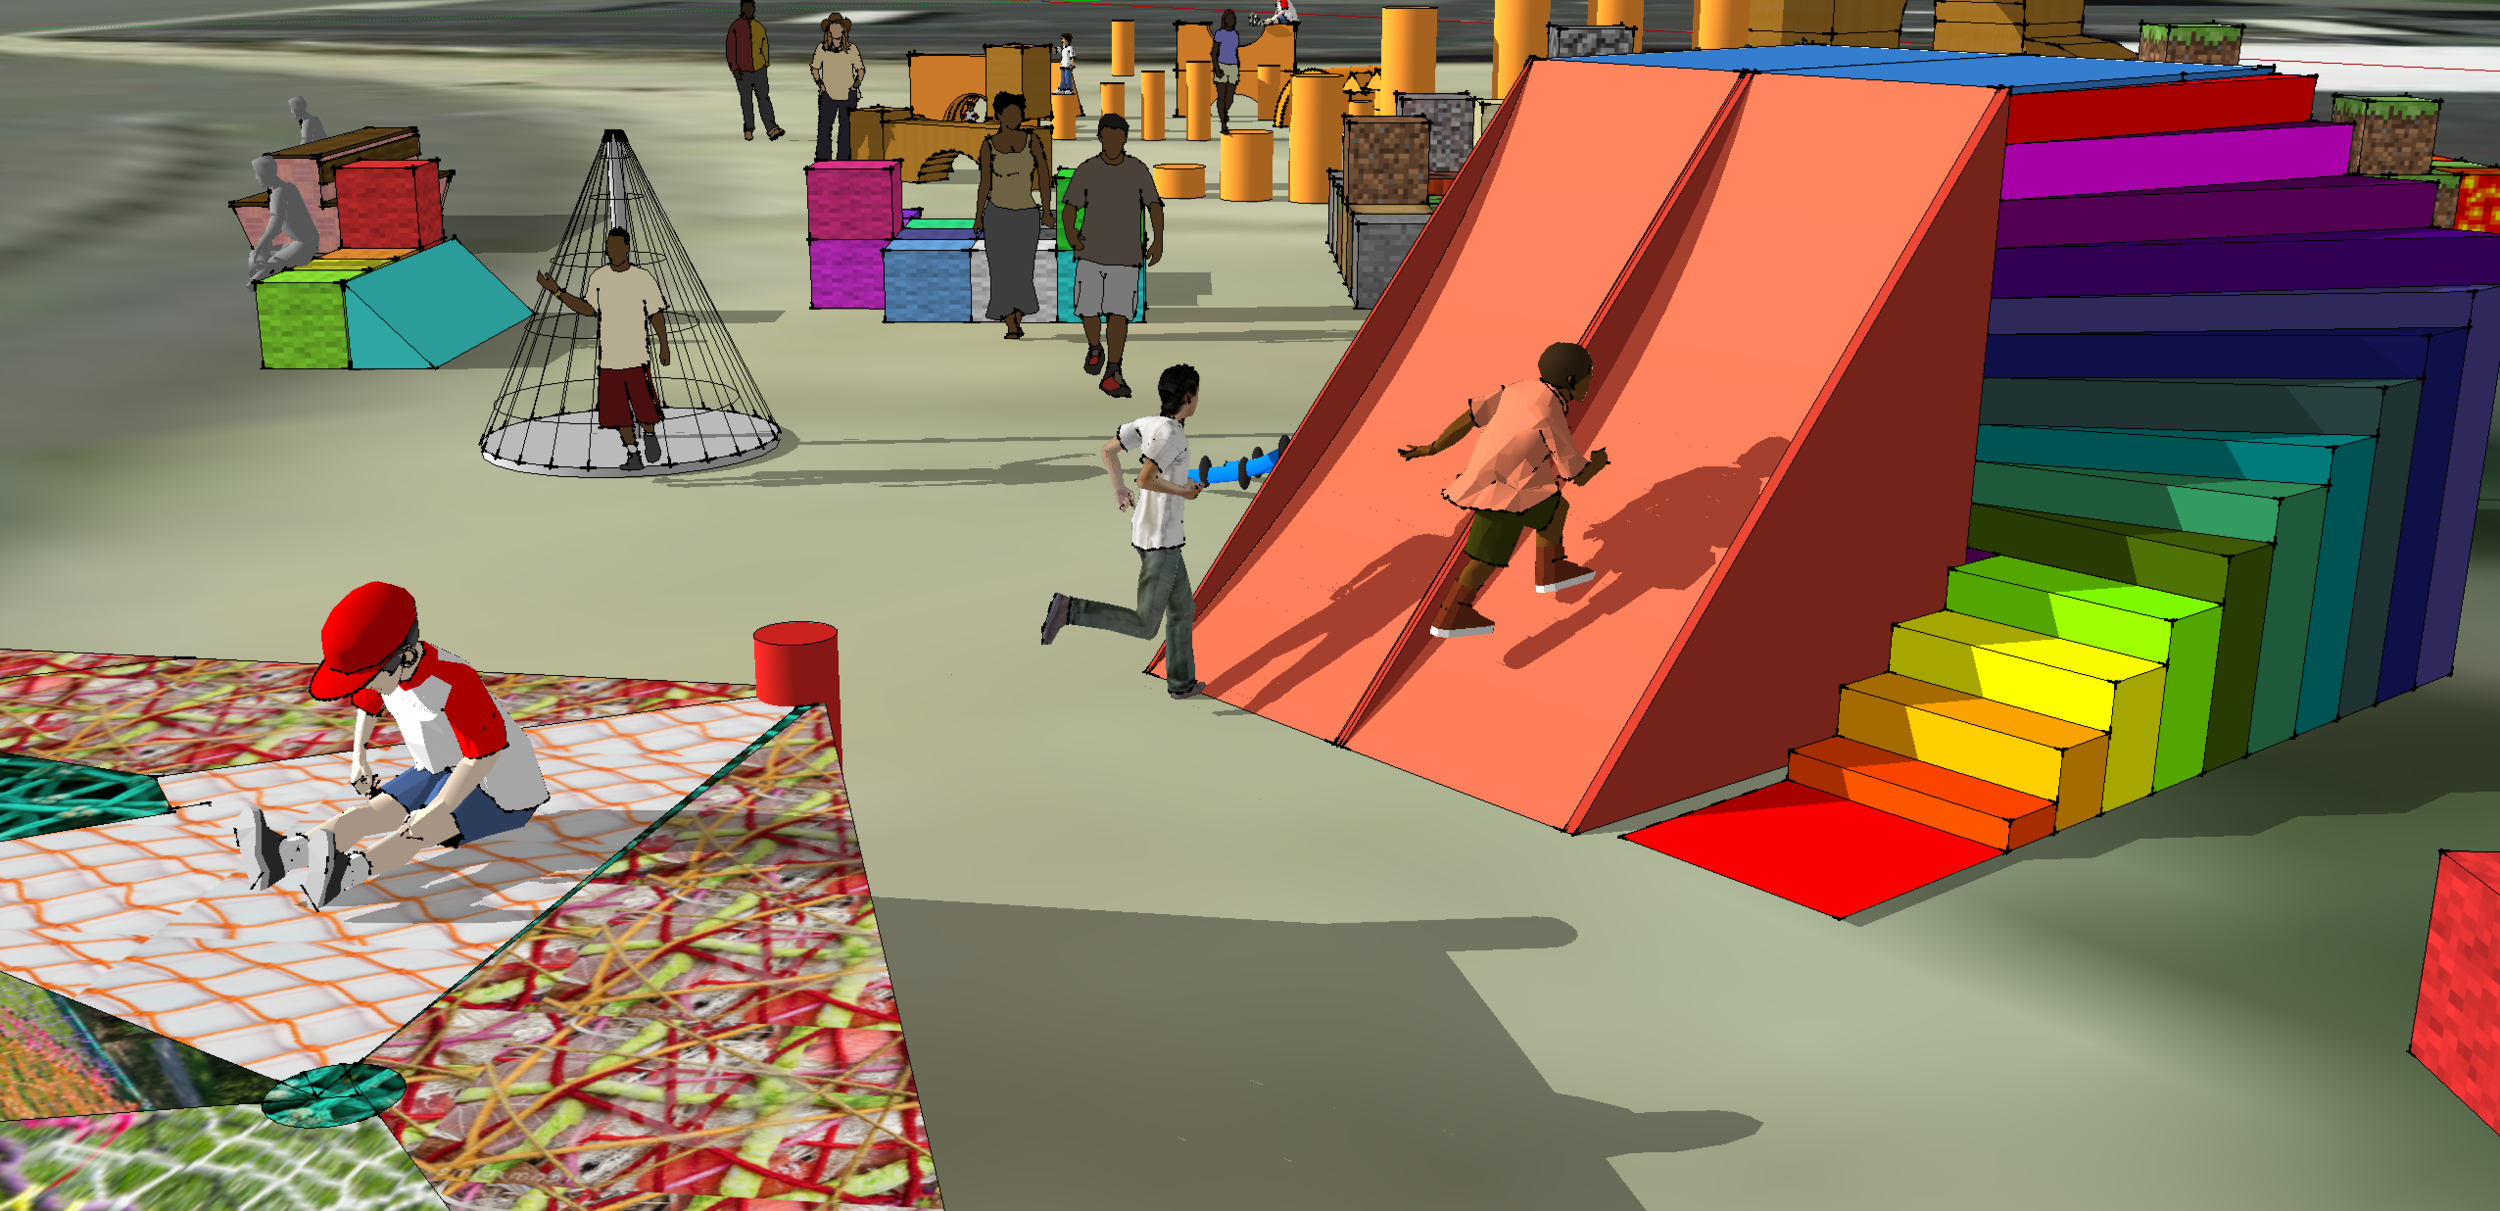 View of the Ninja Warrior Inspired Wall and Slide. Rendering by Alexandra Bowen.